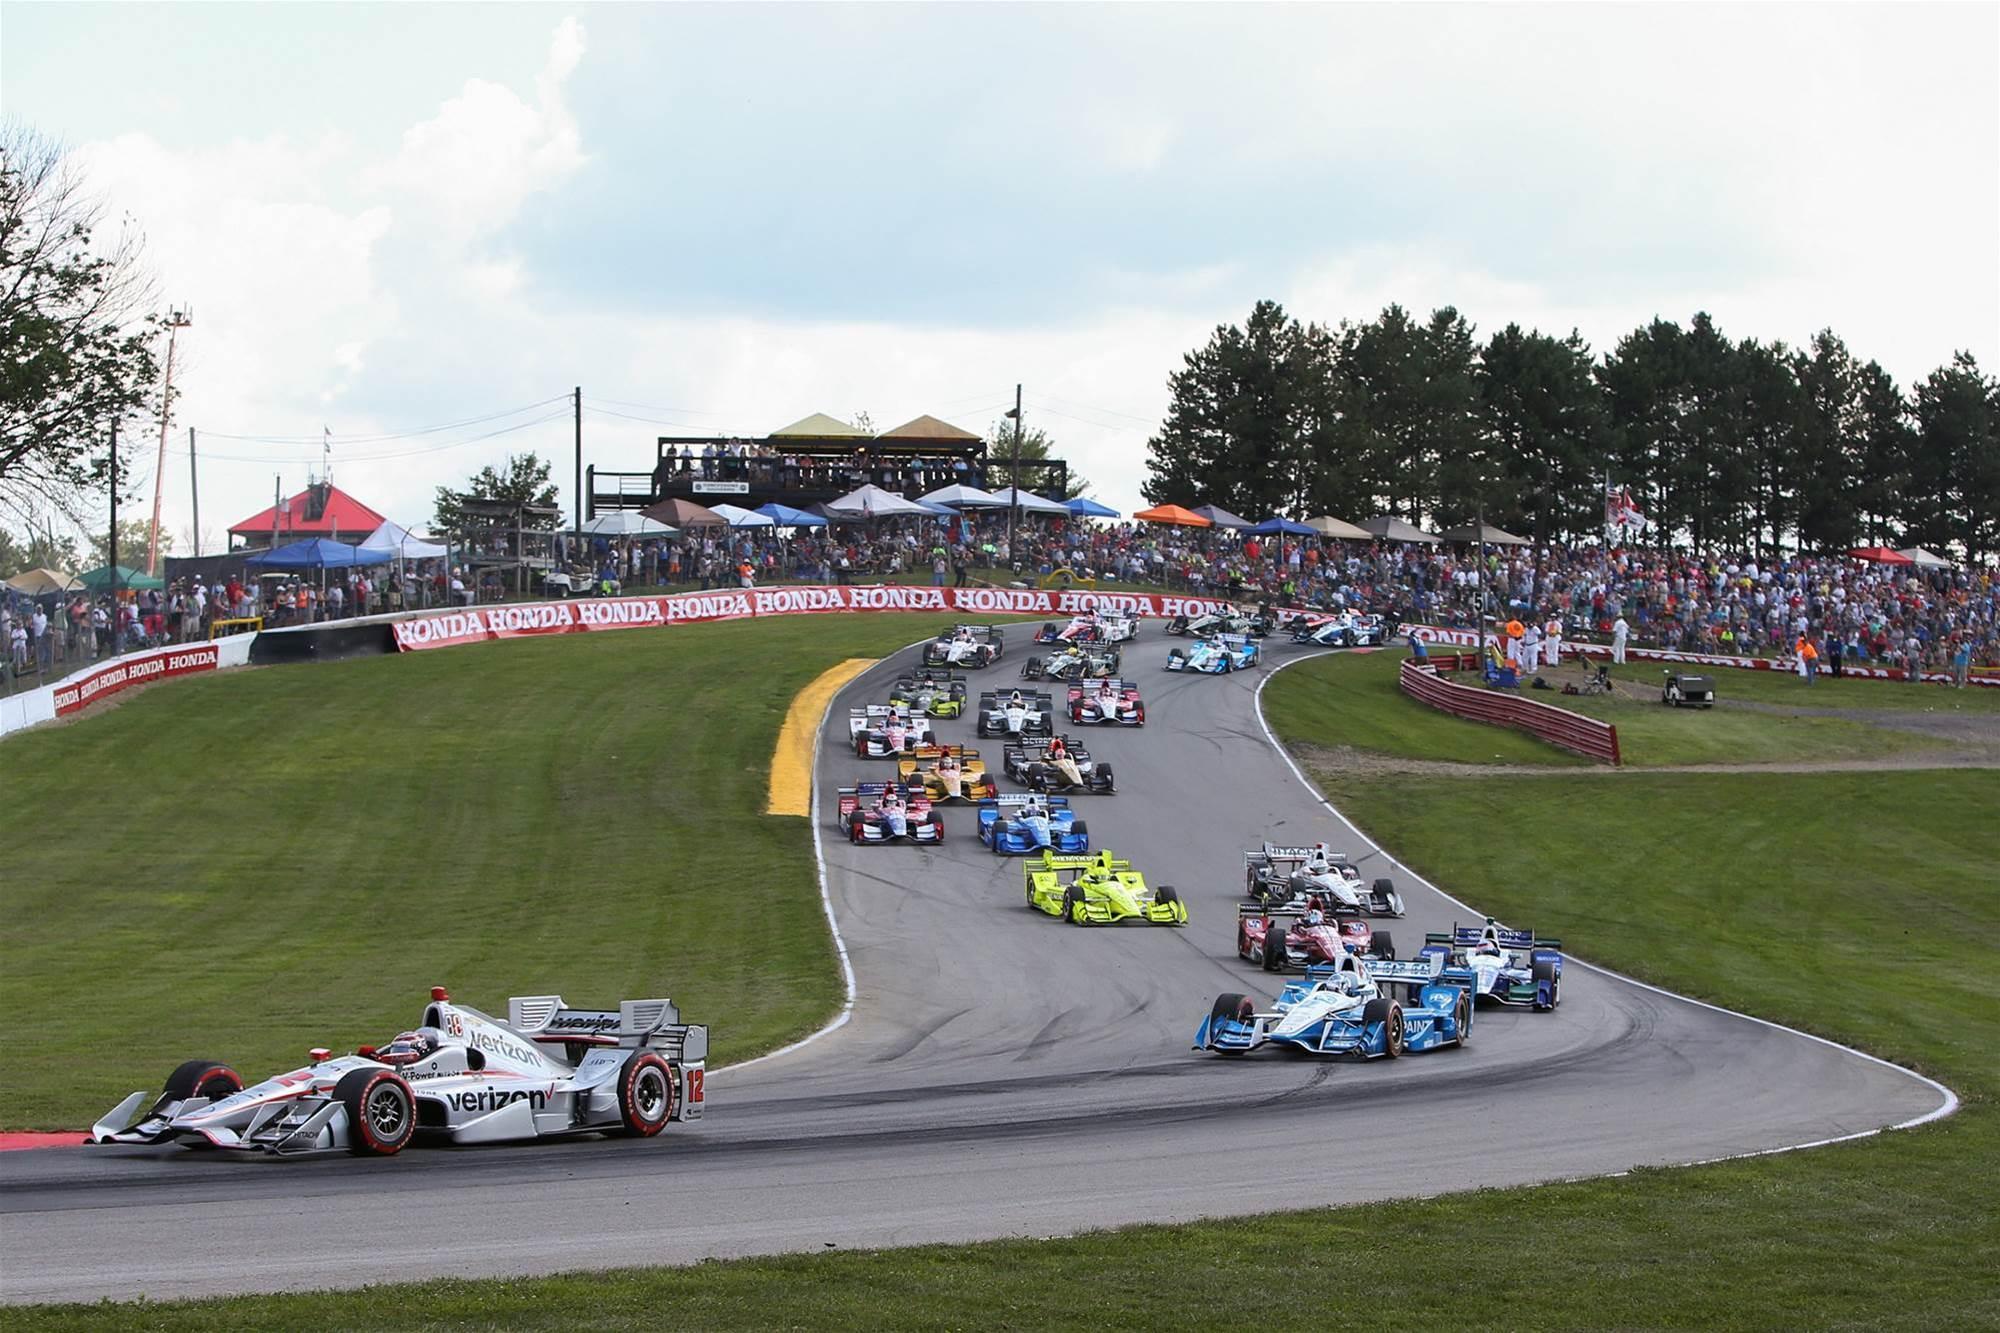 Pic gallery: Mid-Ohio Indycars